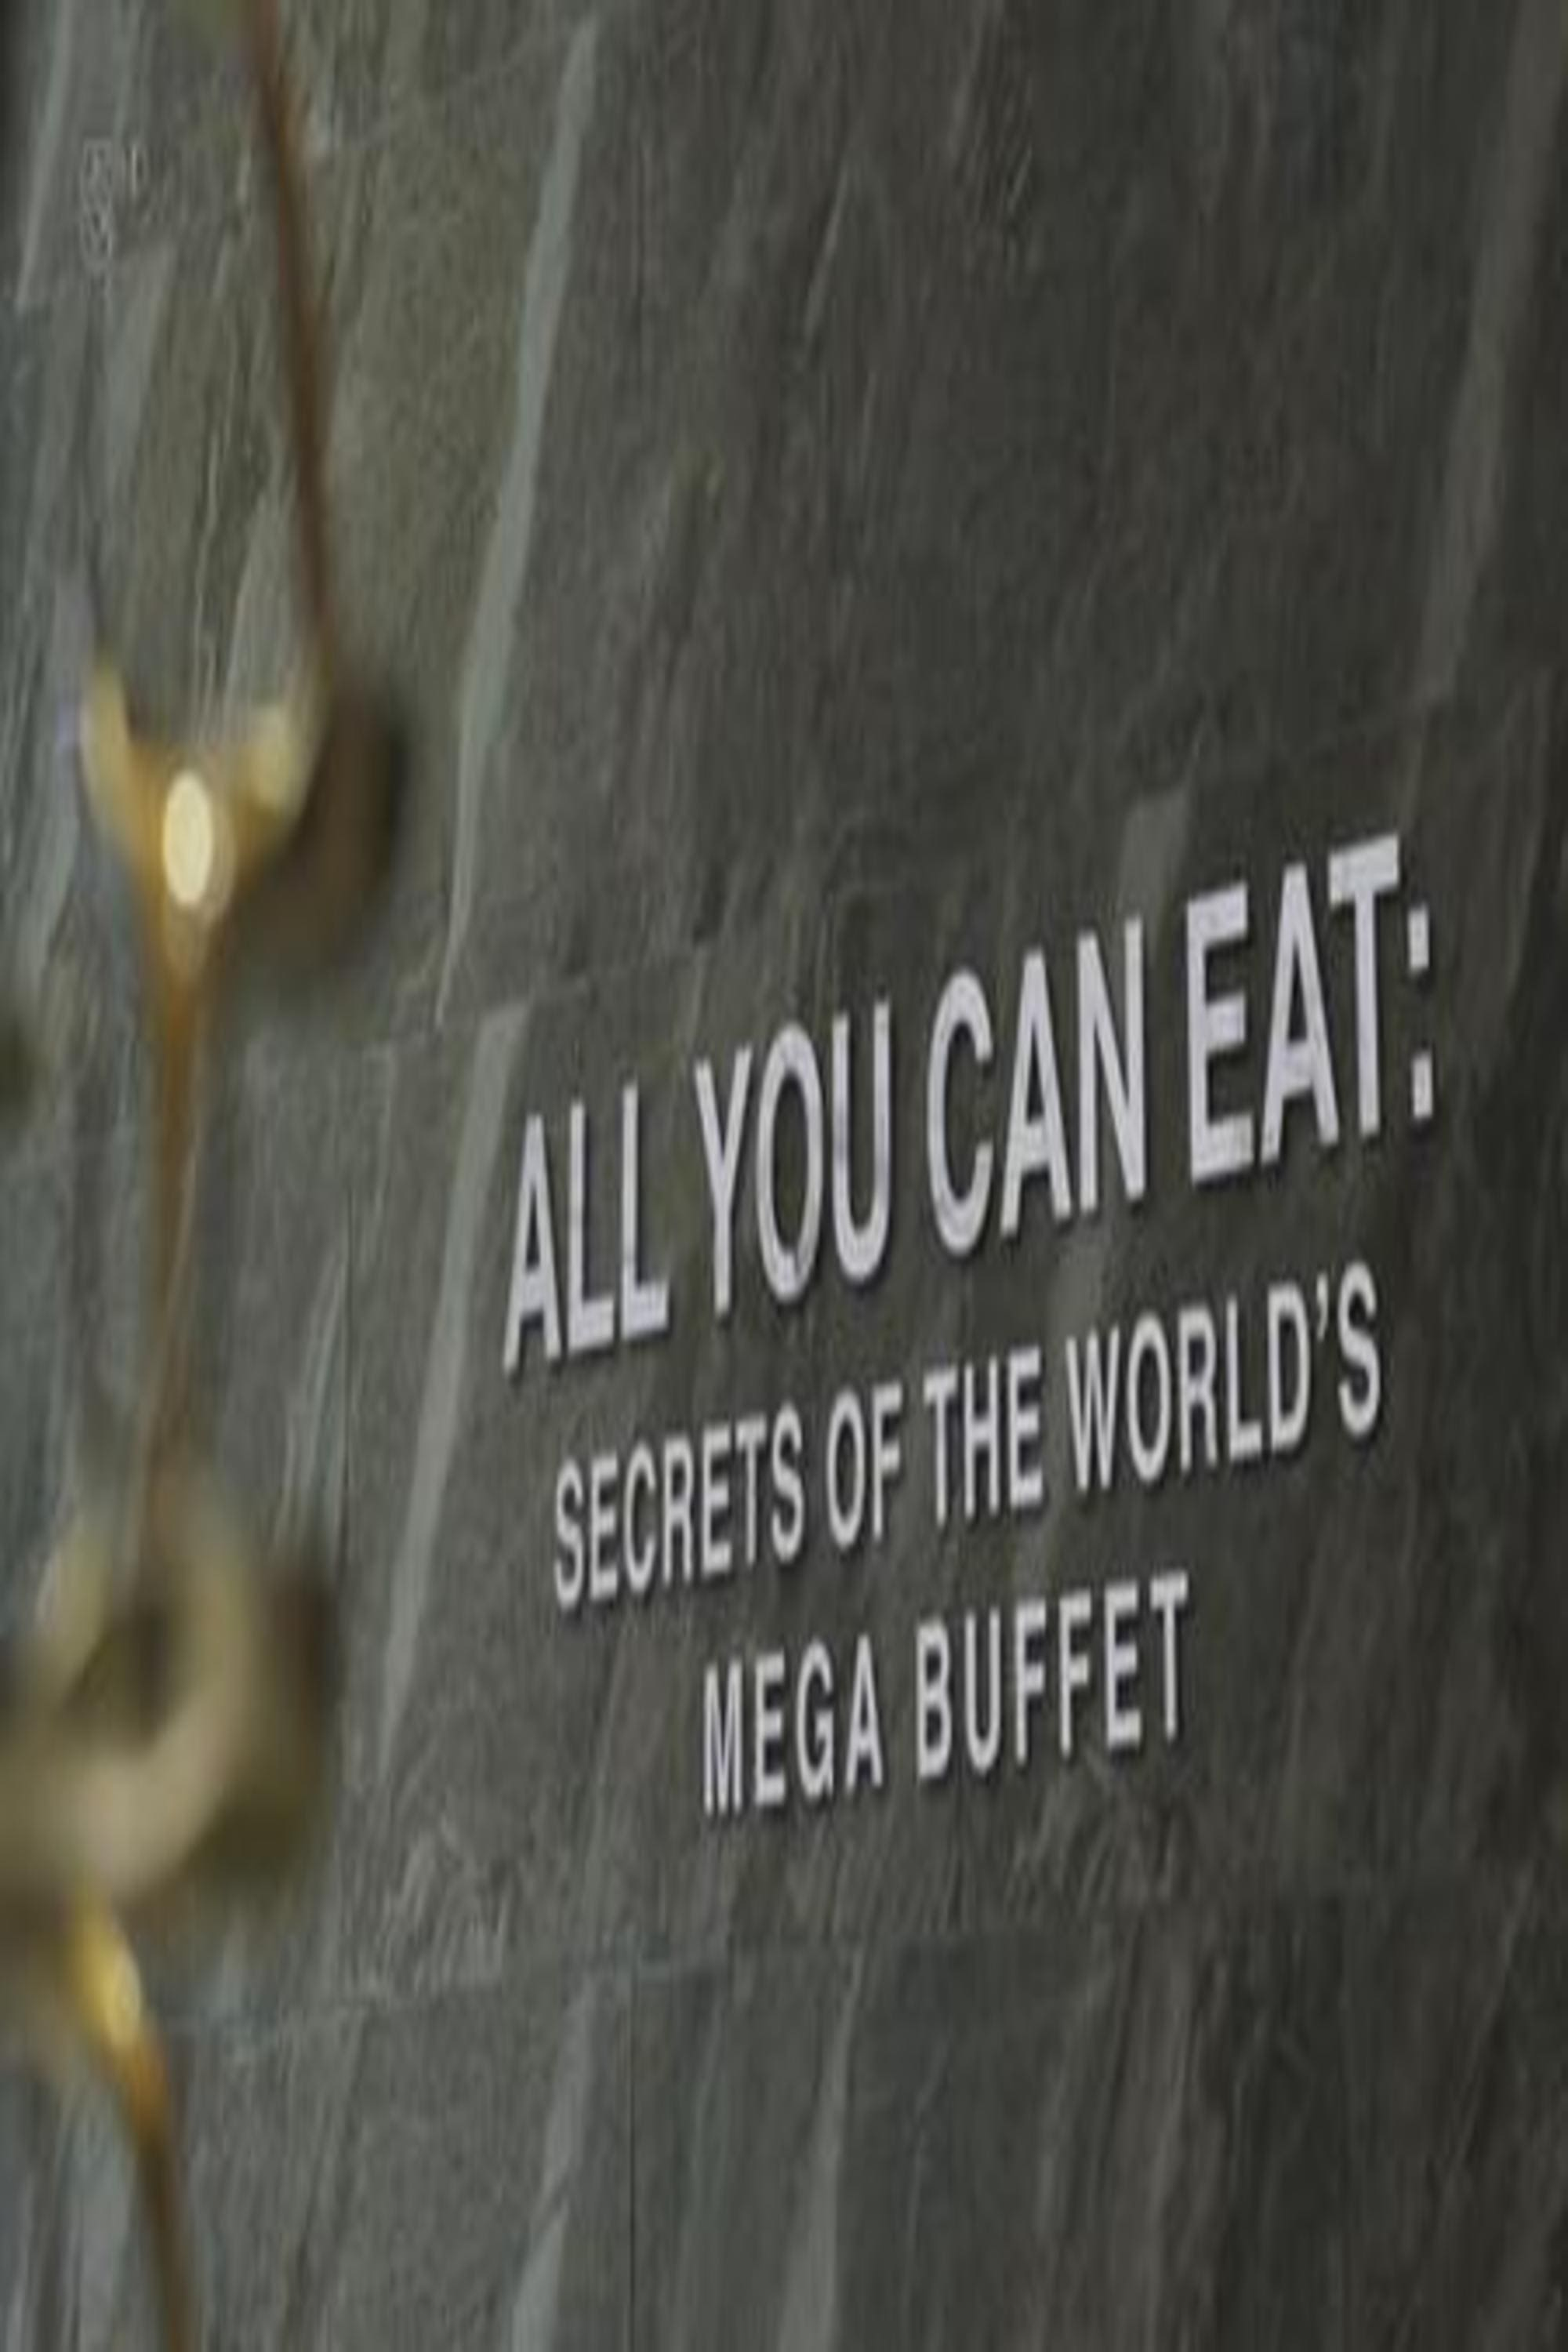 All You Can Eat Secrets Of The Worlds Mega Buffet 2019 (2019)